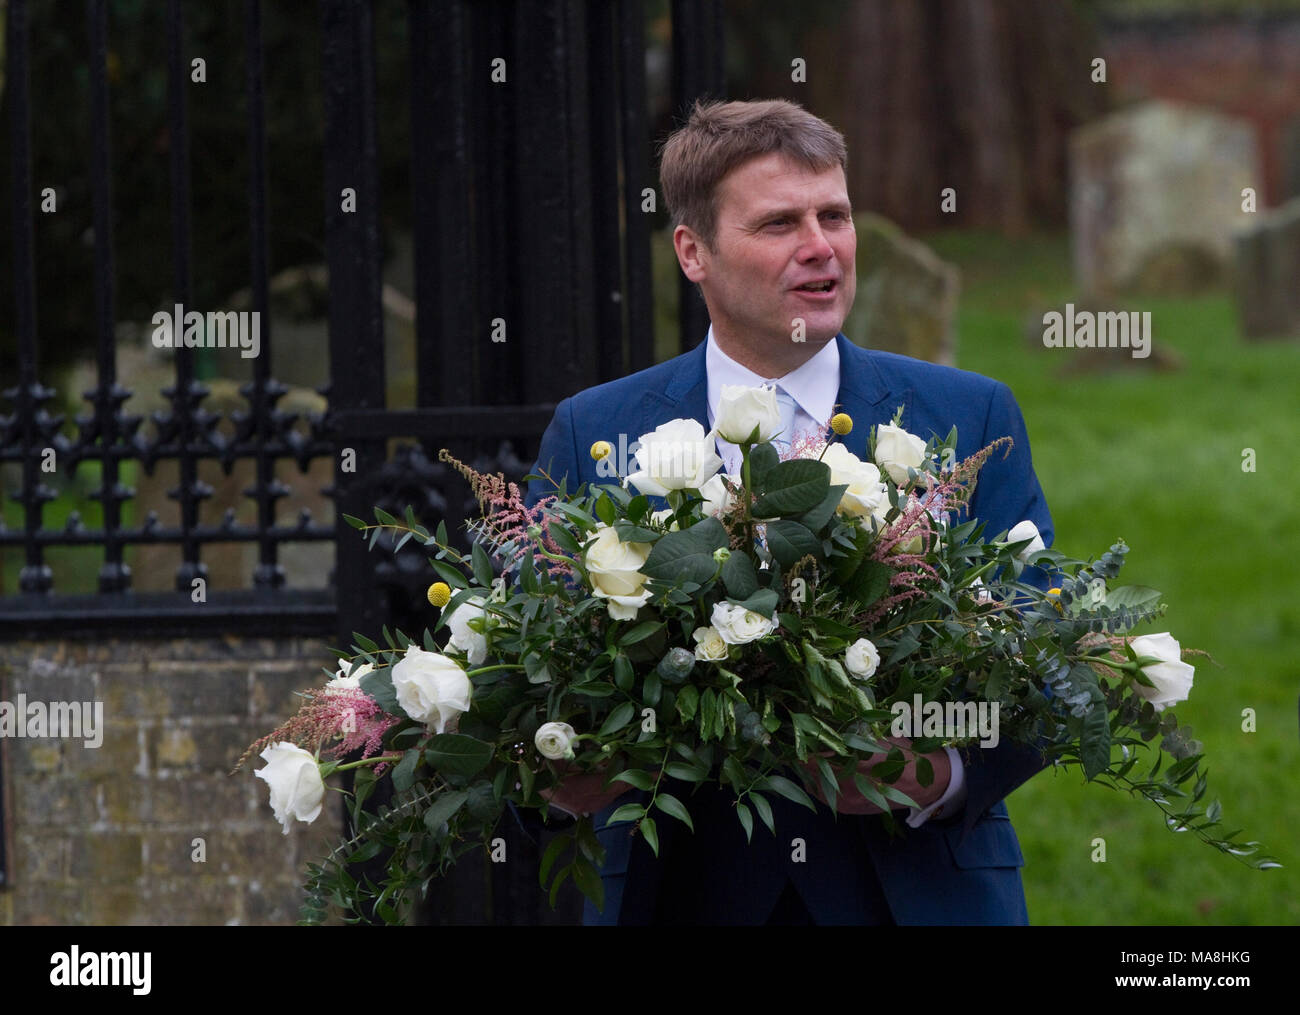 Man leaving church wedding carrying a floral arrangement - Stock Image